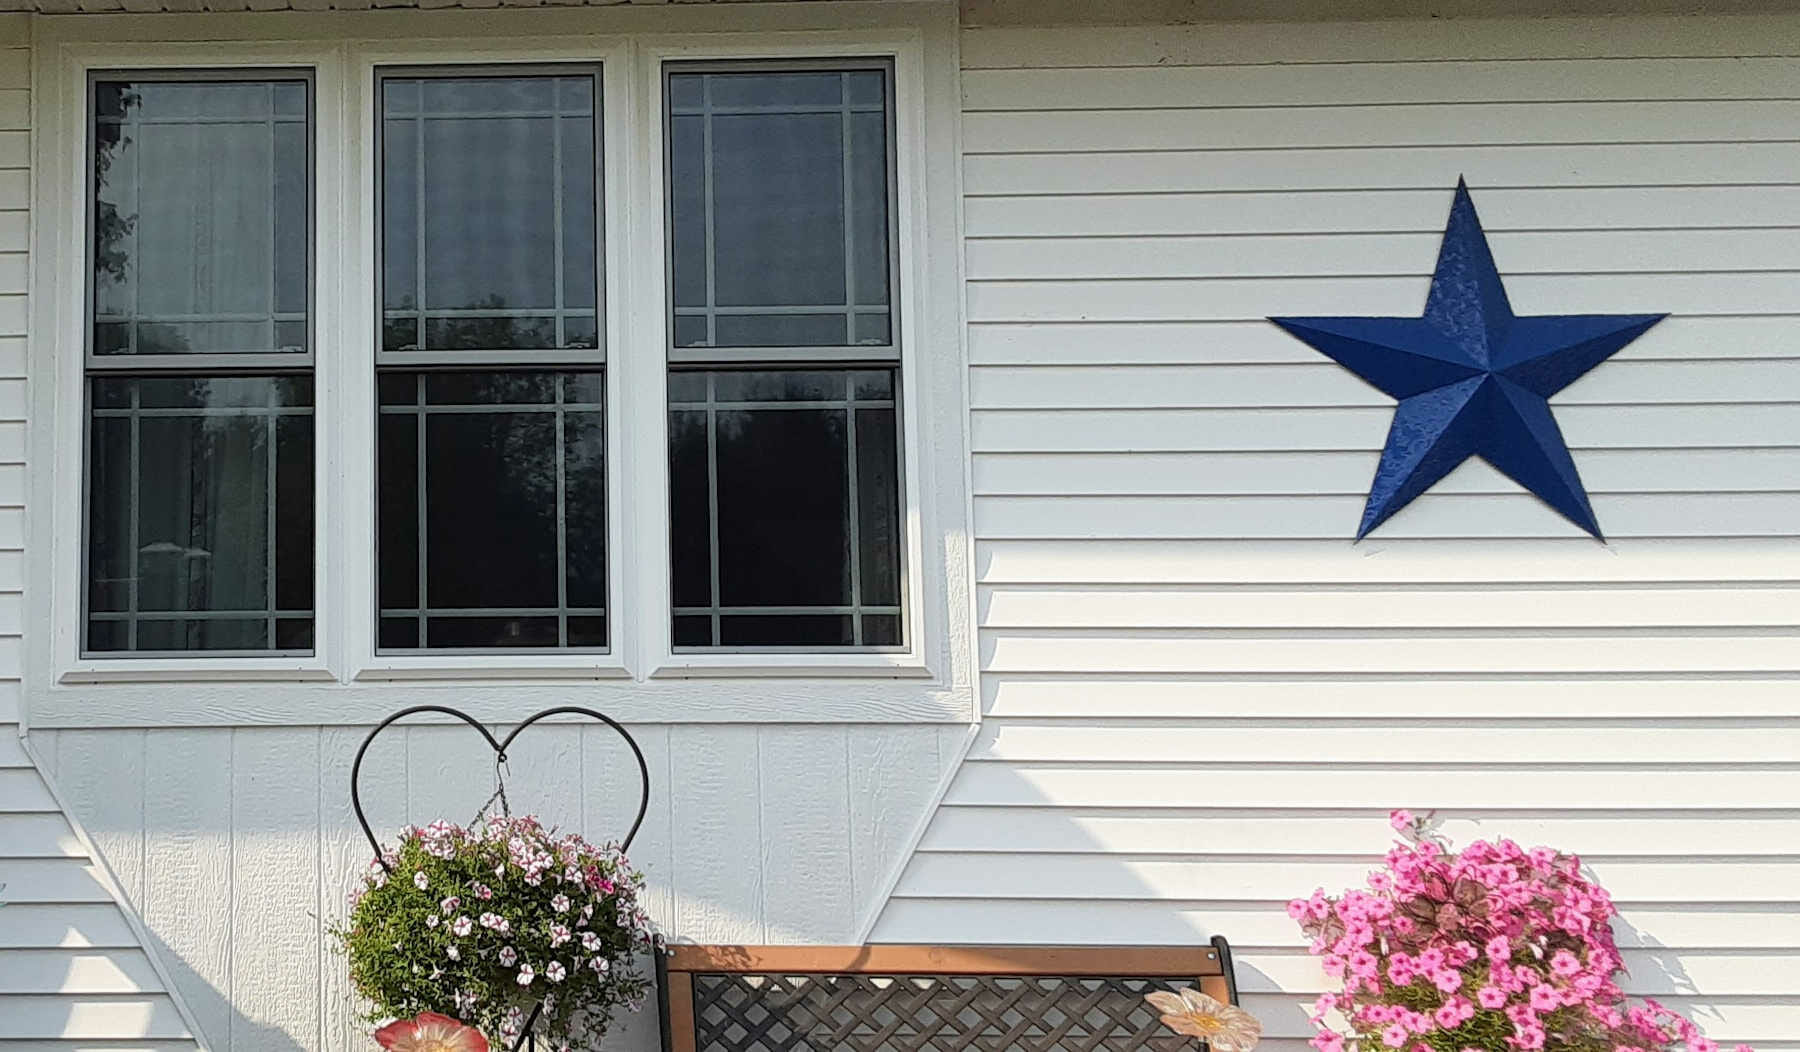 Flat Bay window installtion by Balts Construction in Eau Claire, Wisconsin